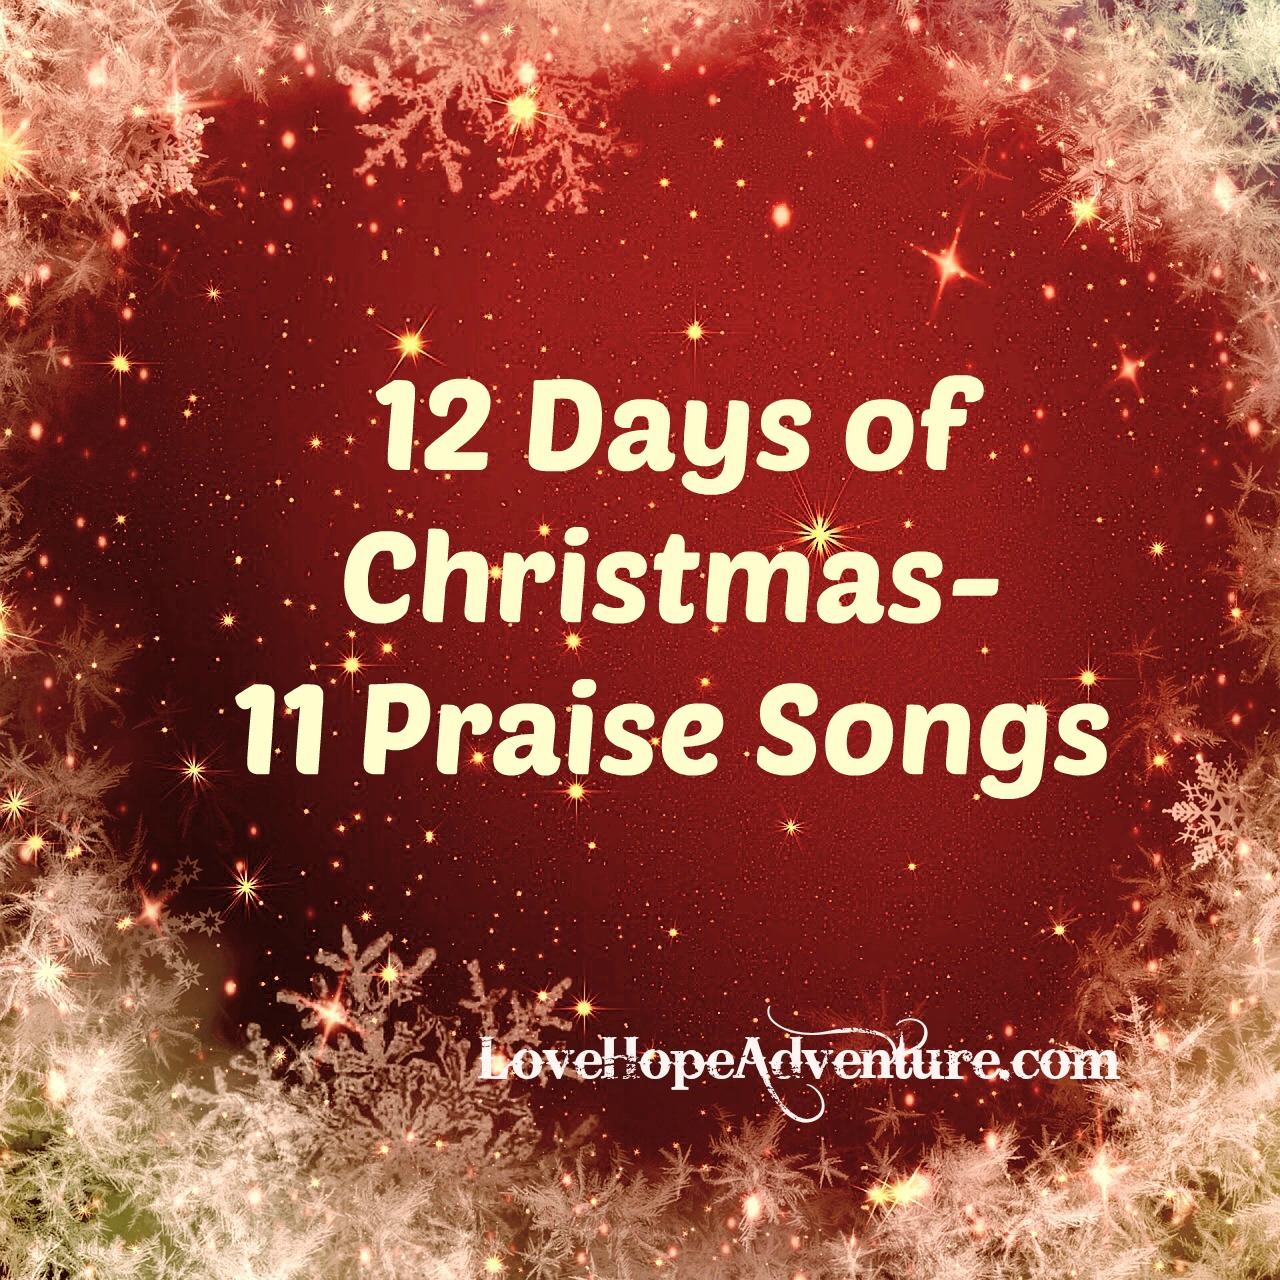 12 Days of Christmas 11 Praise Songs